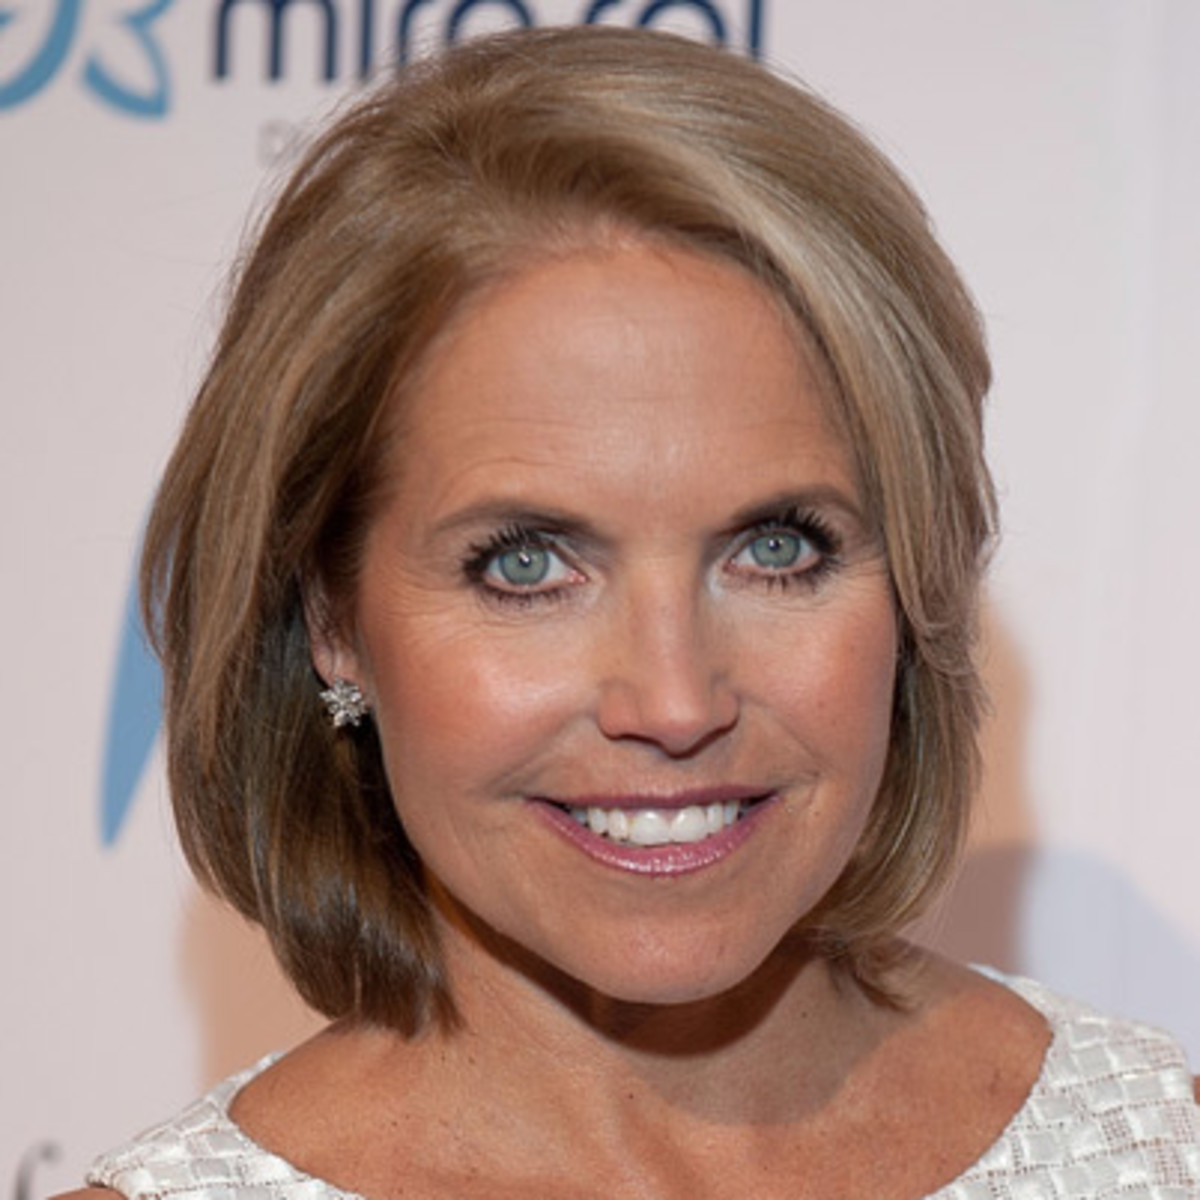 katie couric news anchor talk show host biography